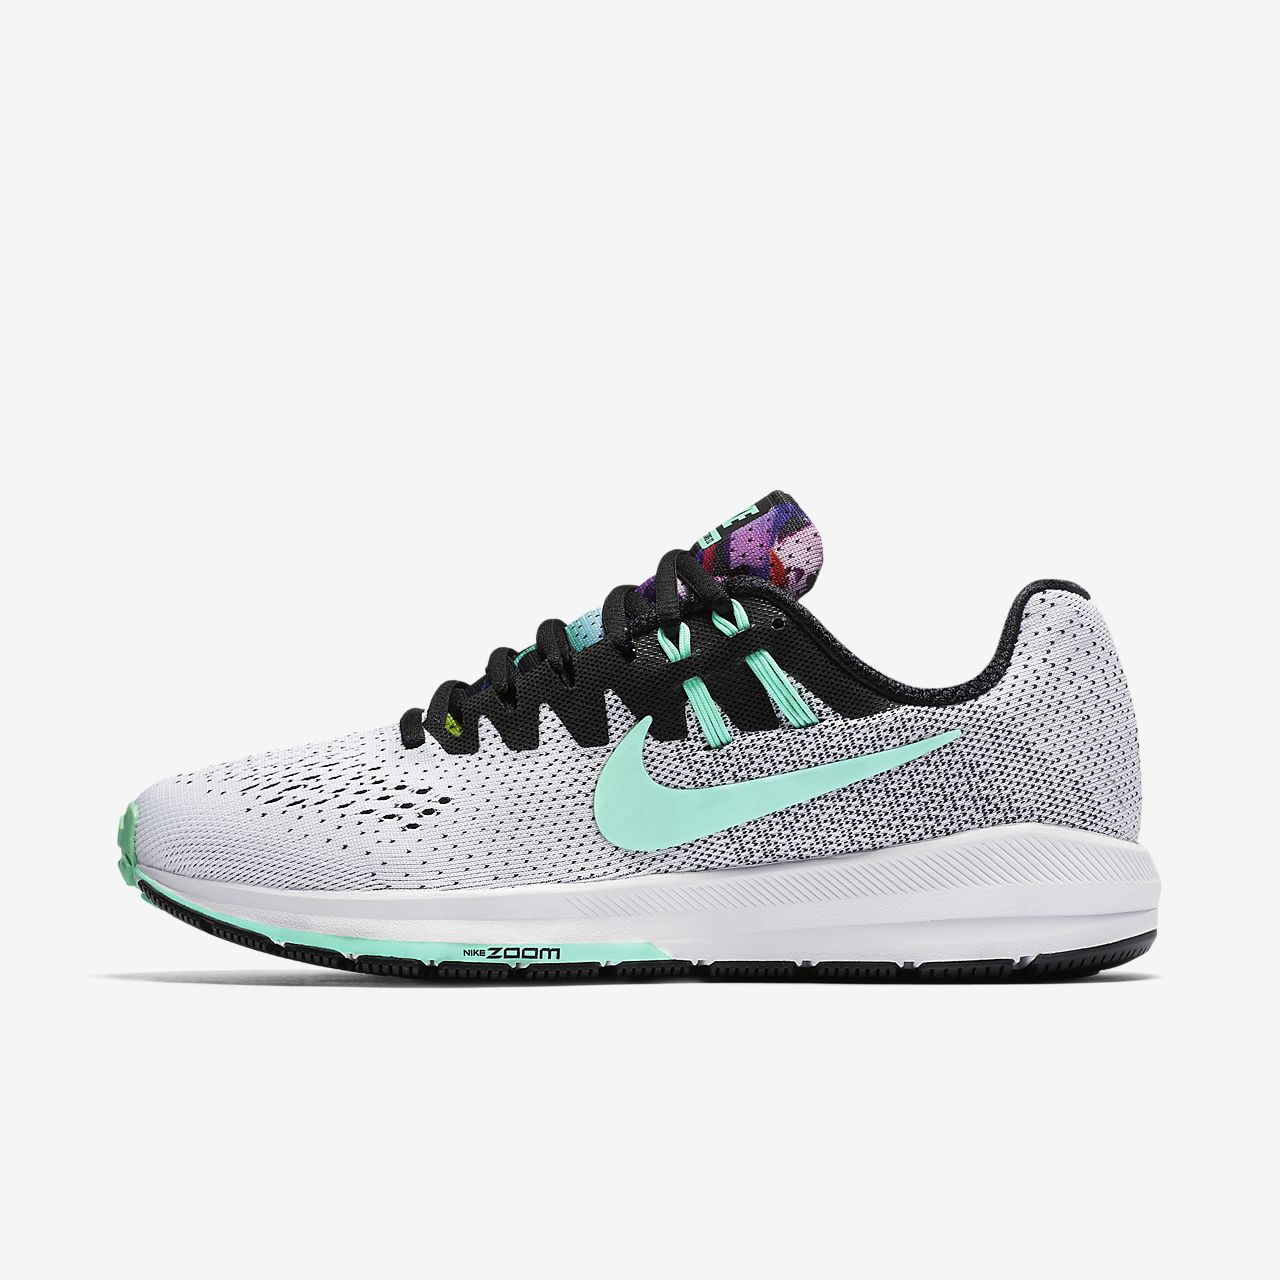 Nike Air Zoom Structure 20 Solstice Women s Running Shoe